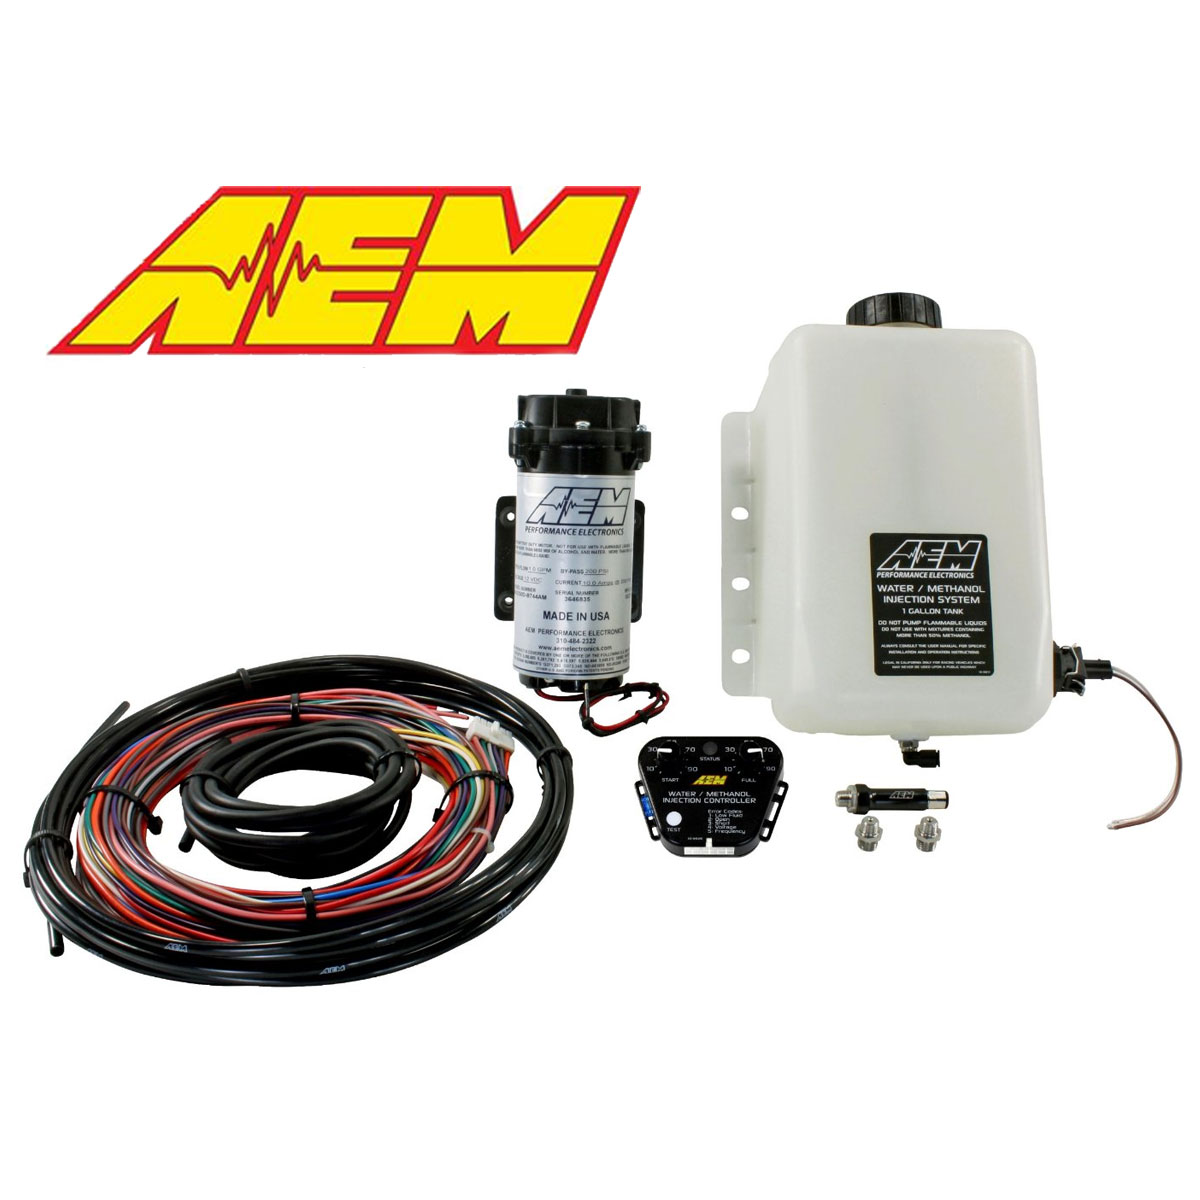 AEM 30-3350 V2 1-Gallon Water Methanol Injection Kit Gasoline w/ Controller  642035900872 | eBay